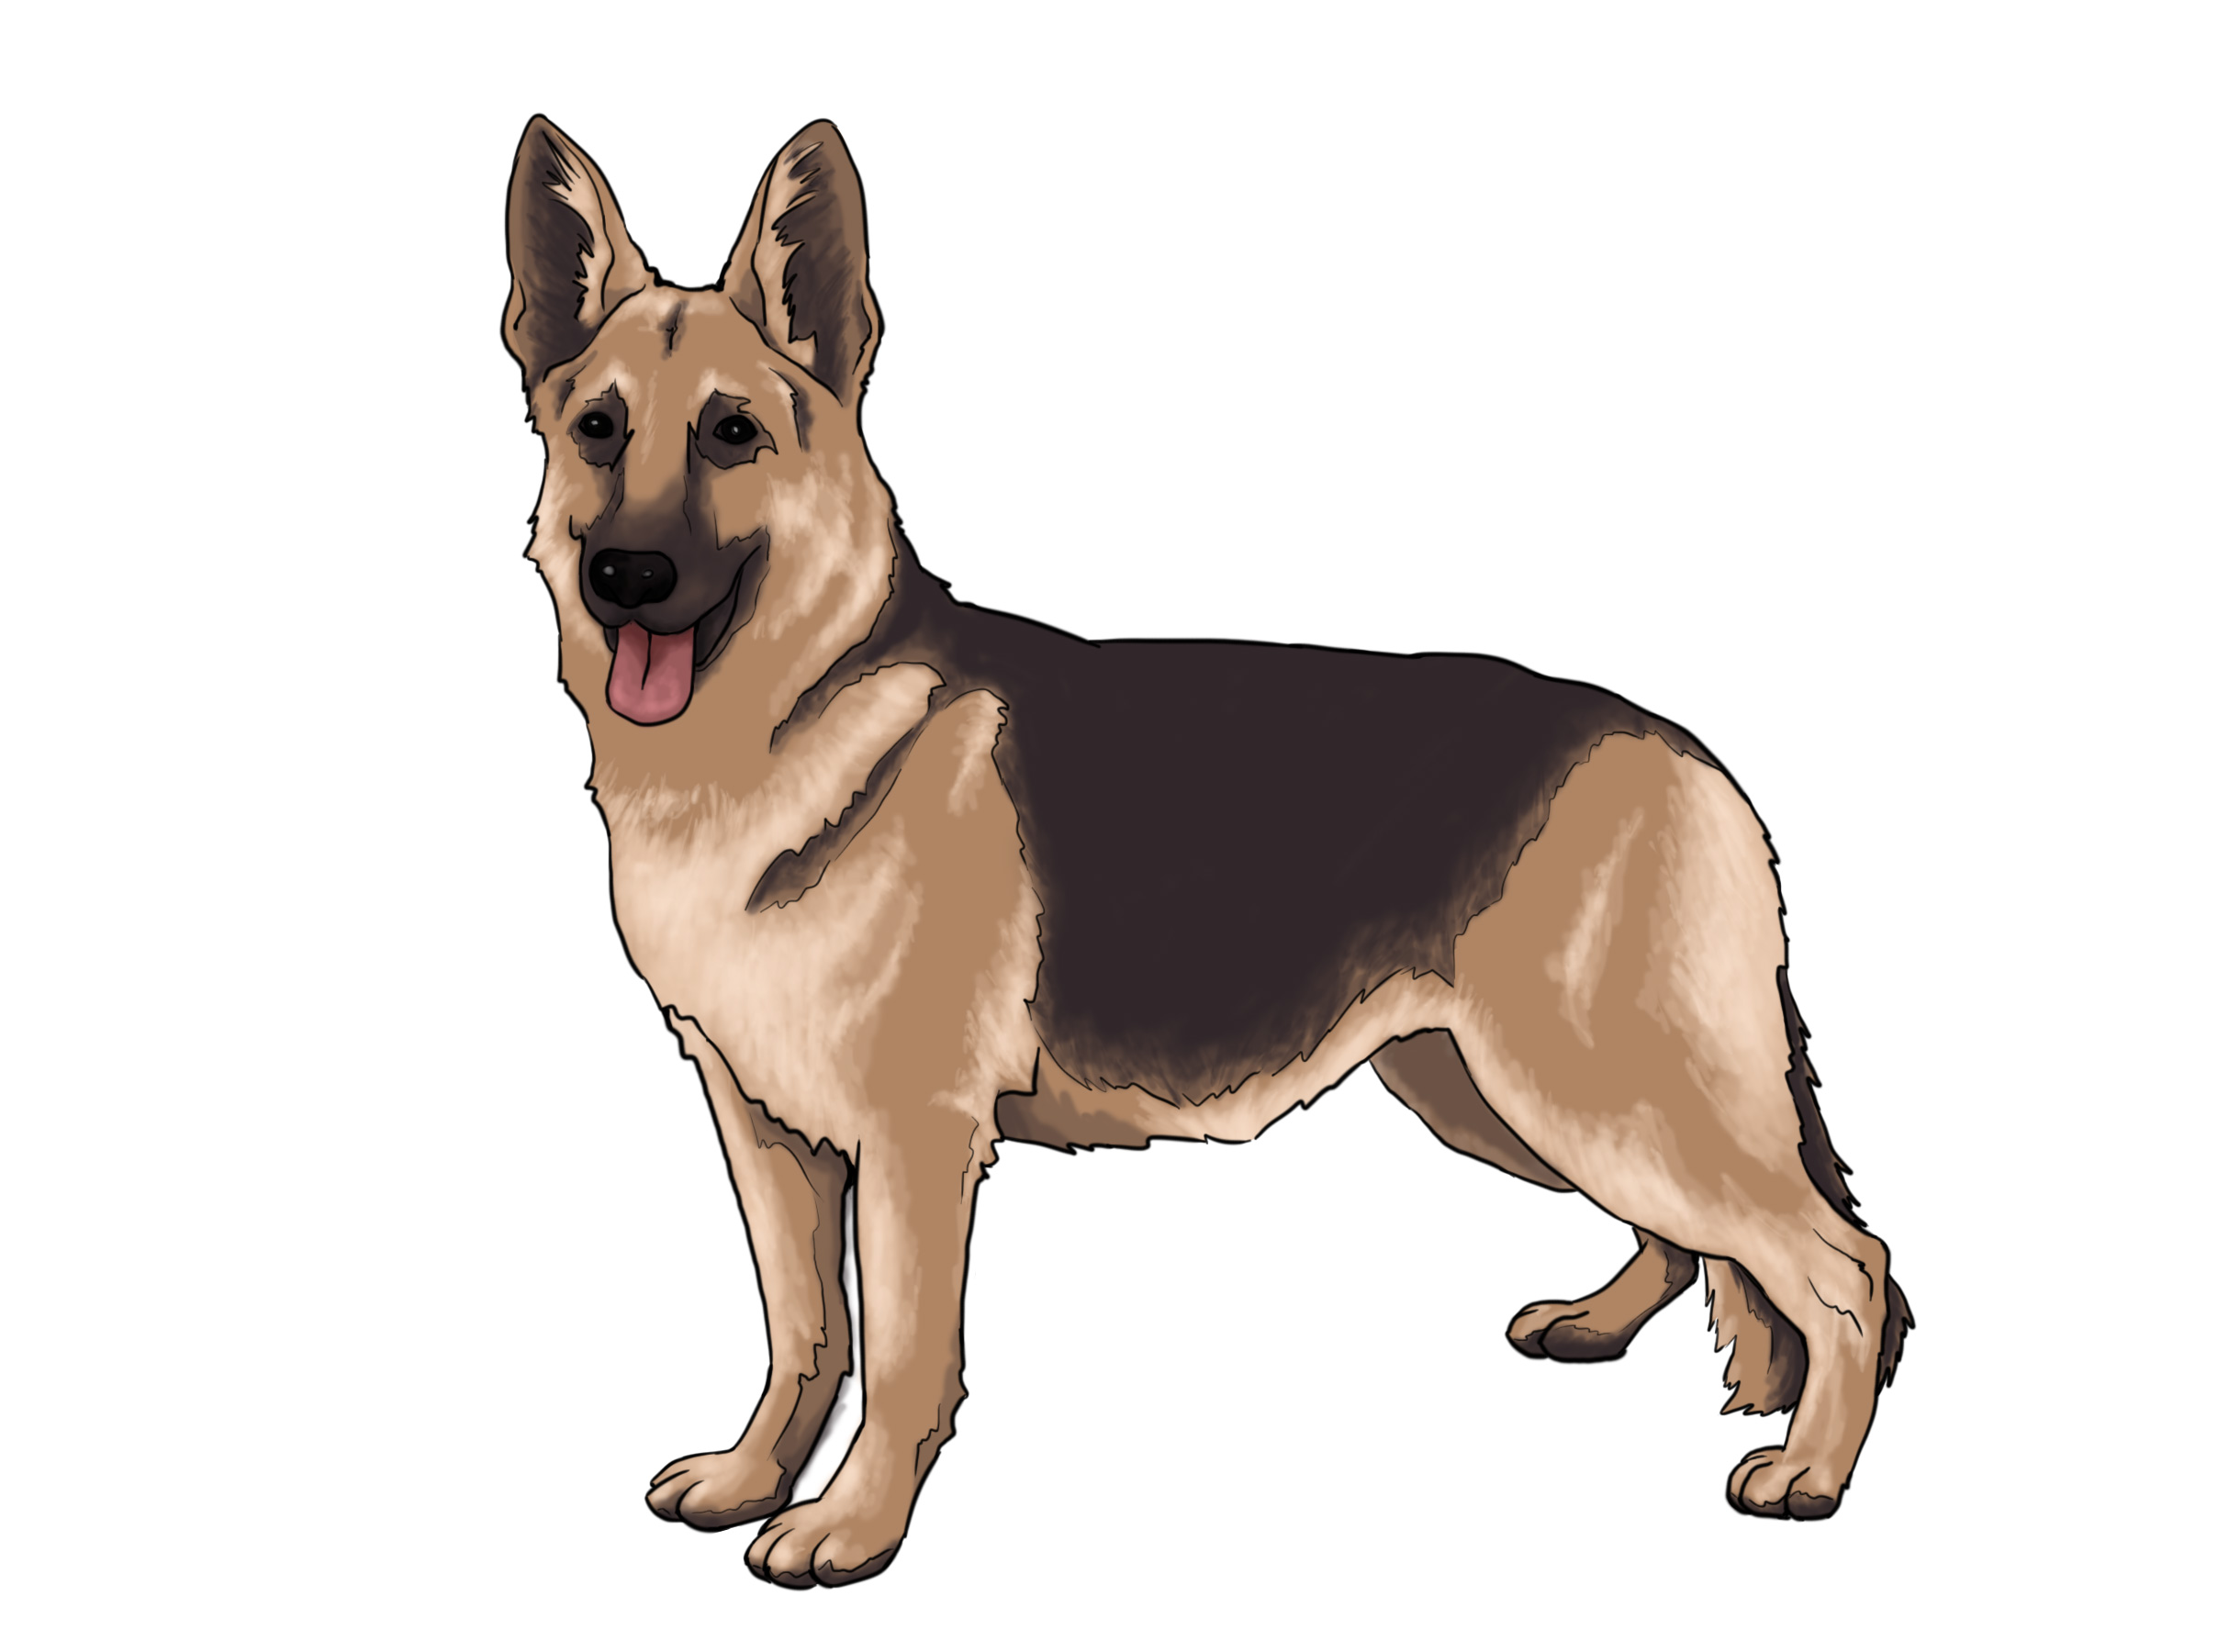 Realistic clipart puppy #12